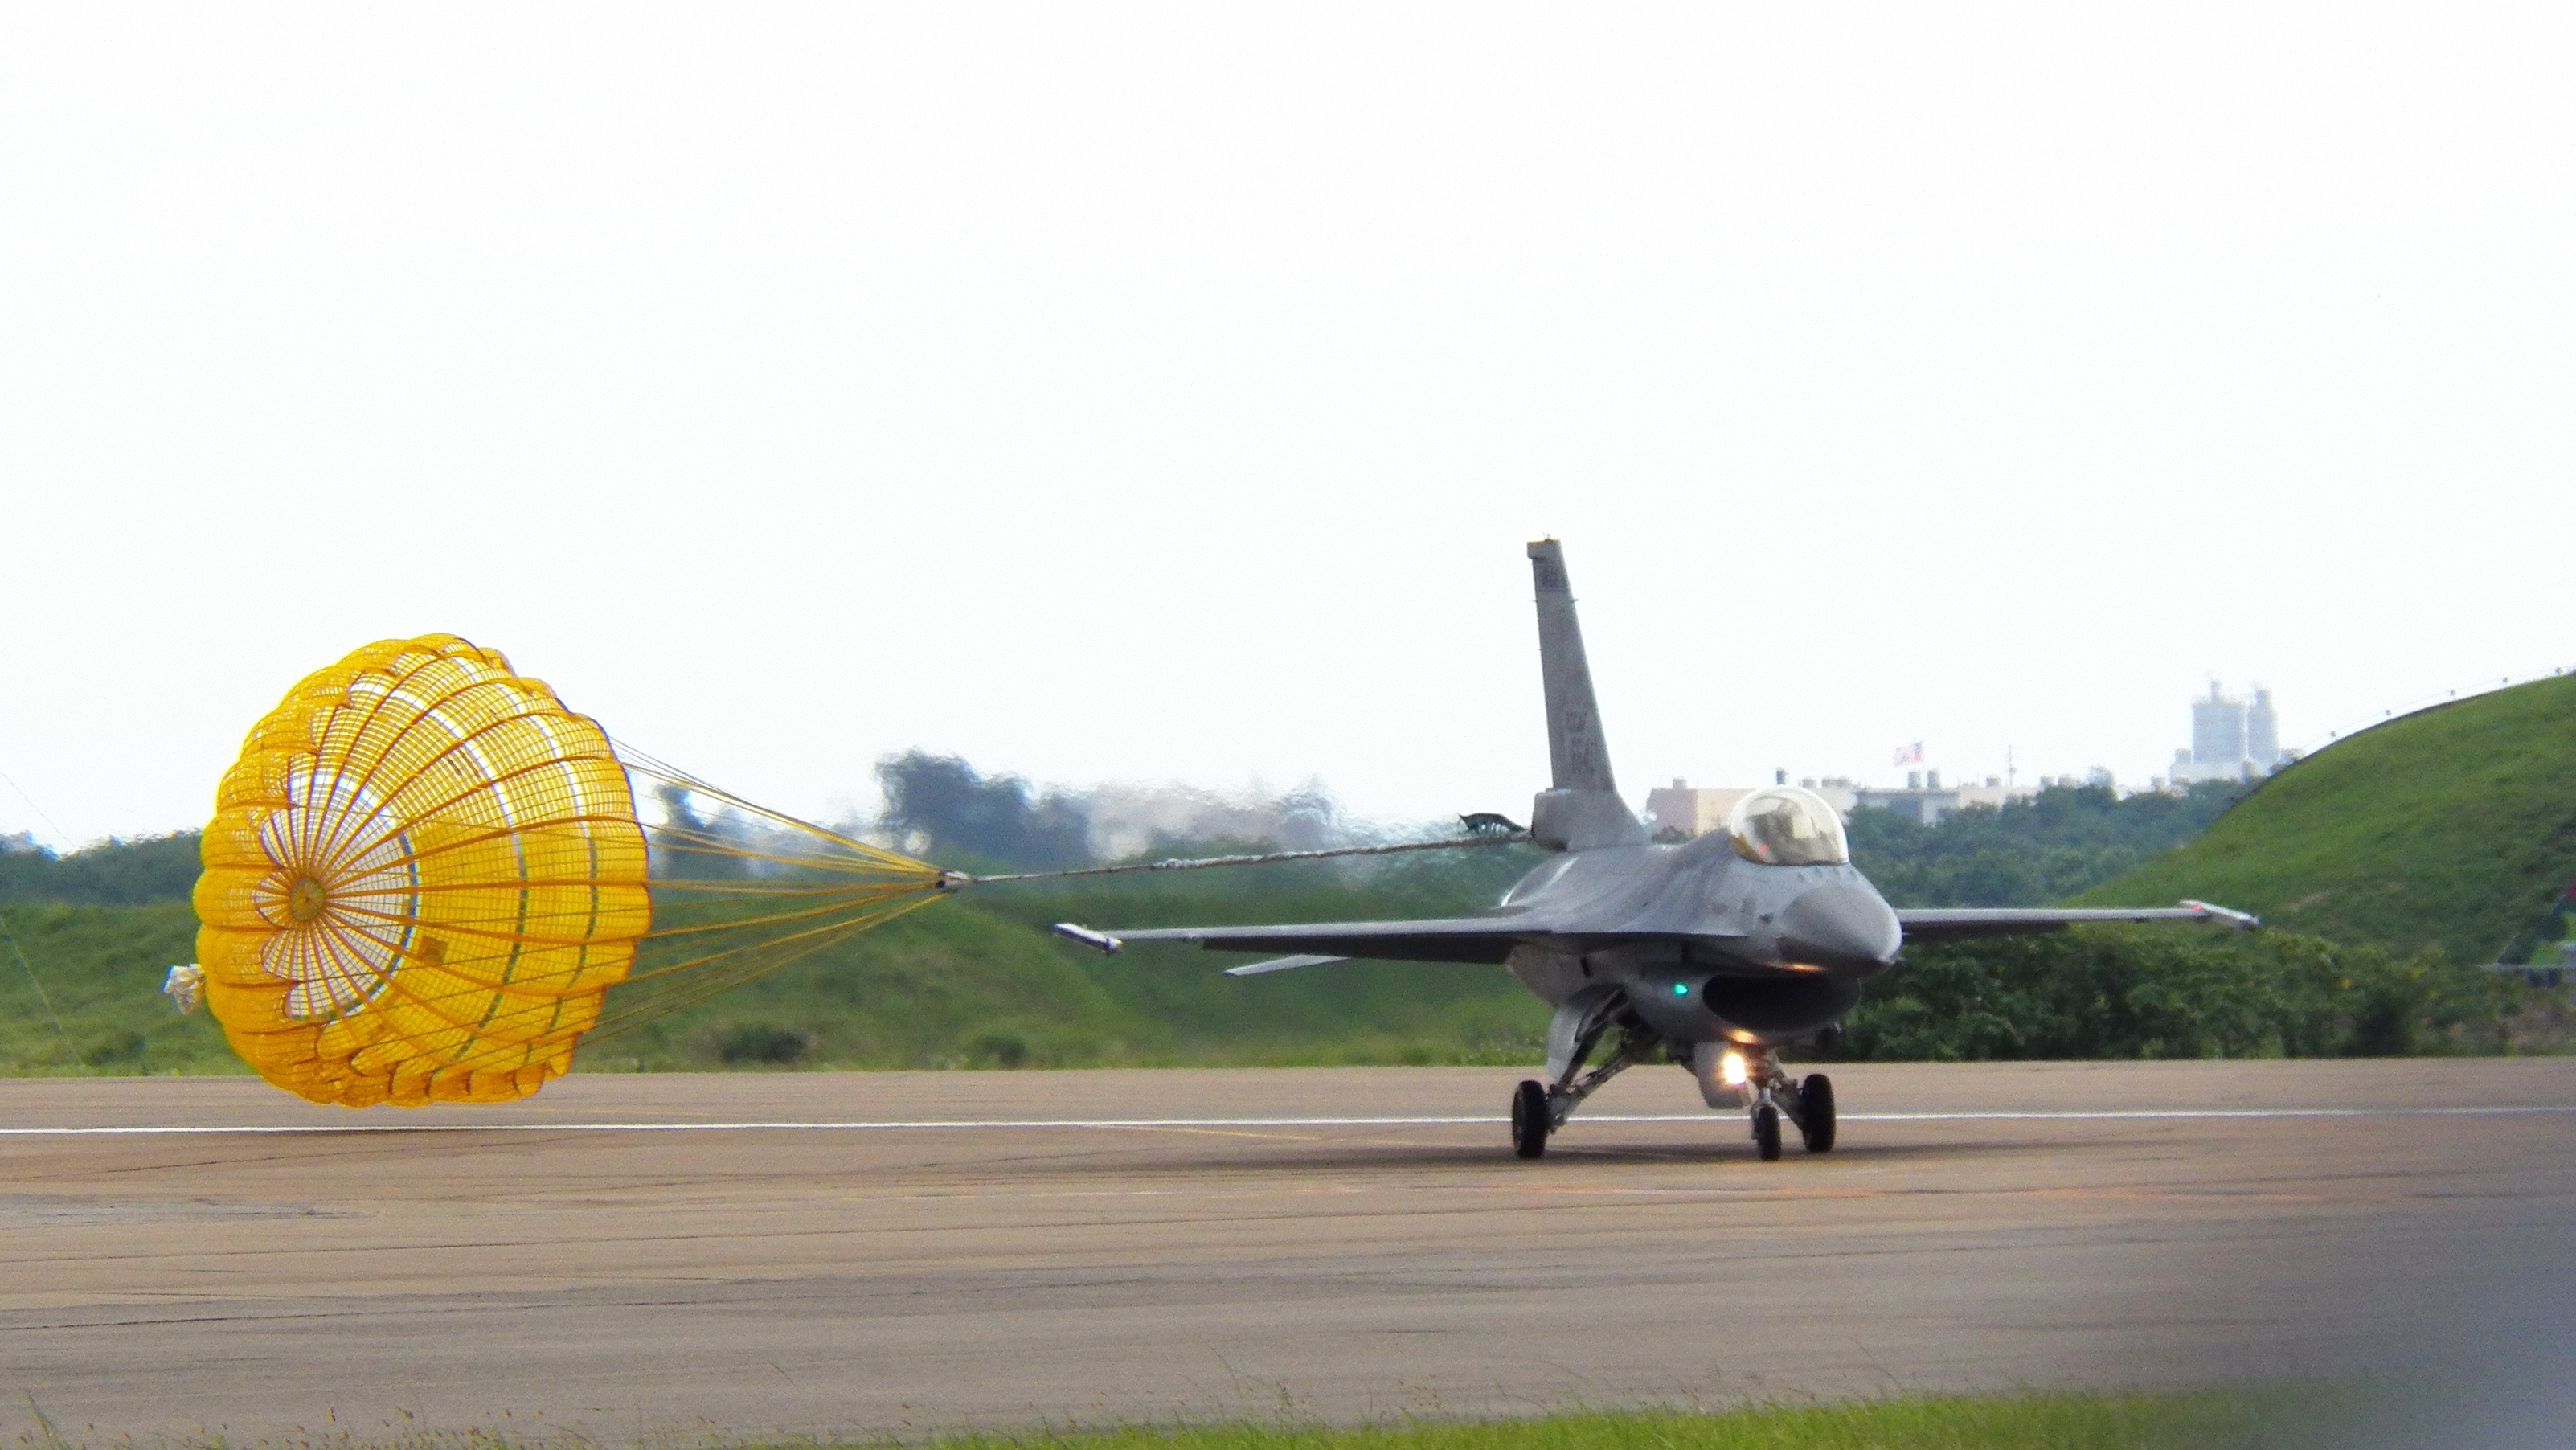 ROCAF_F-16A_6640_Landing_Down_Opened_Dro